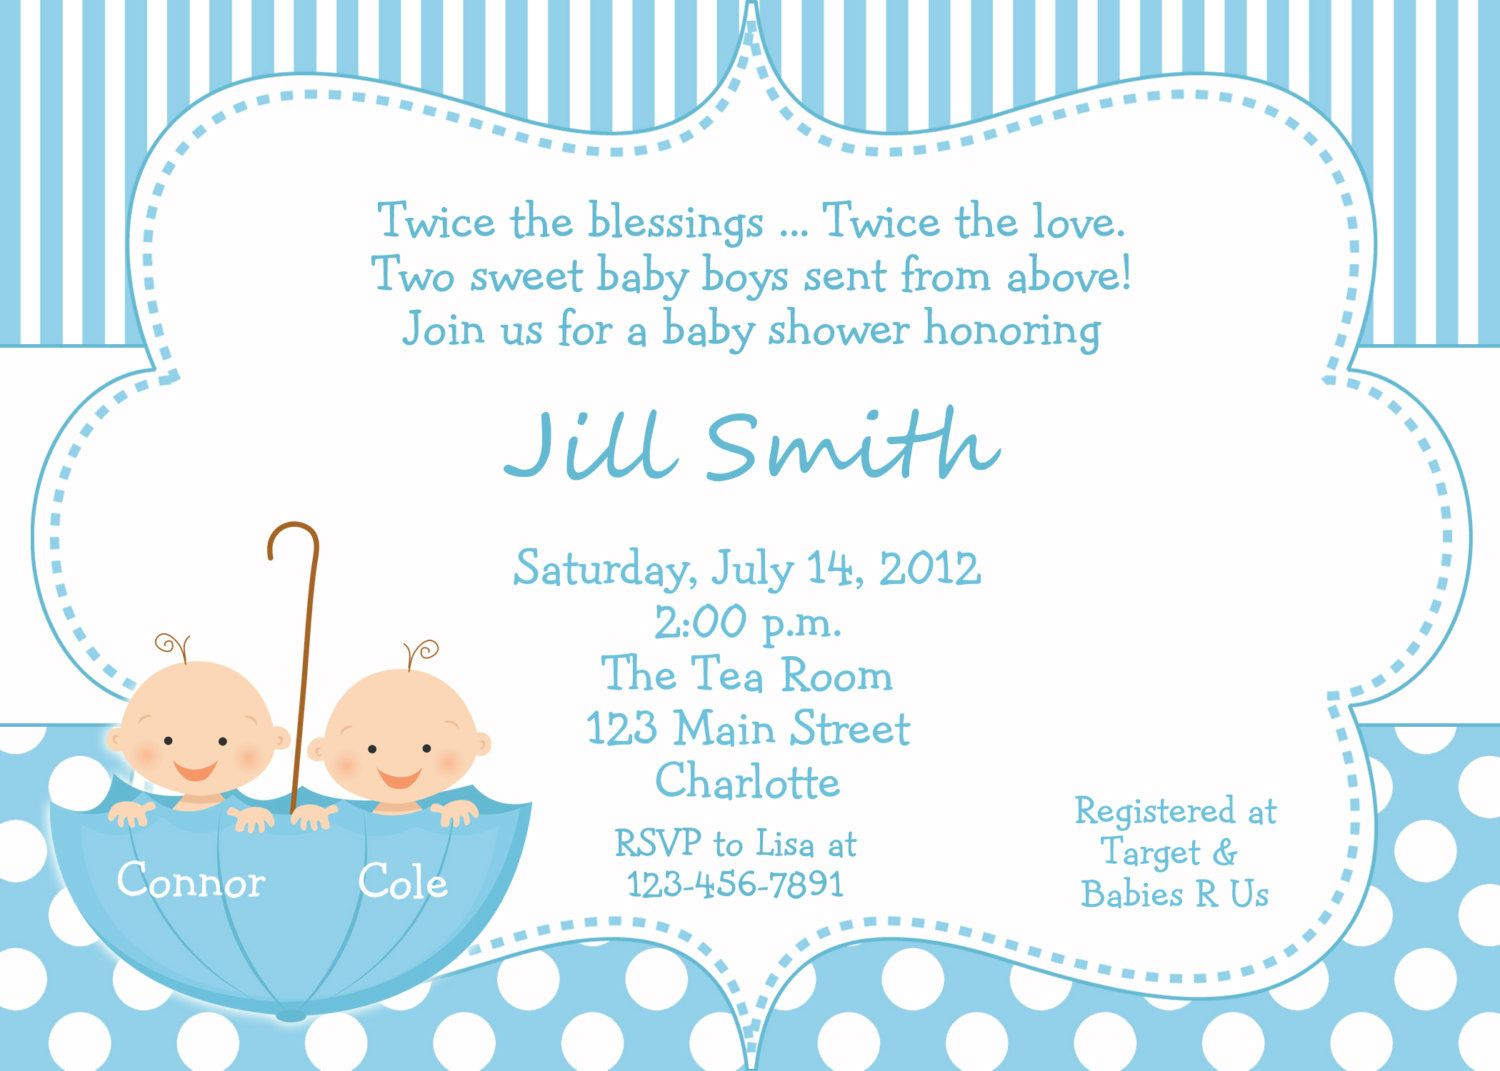 Baby Shower Invitations: Twin Baby Shower Invitations Blue Frame ...